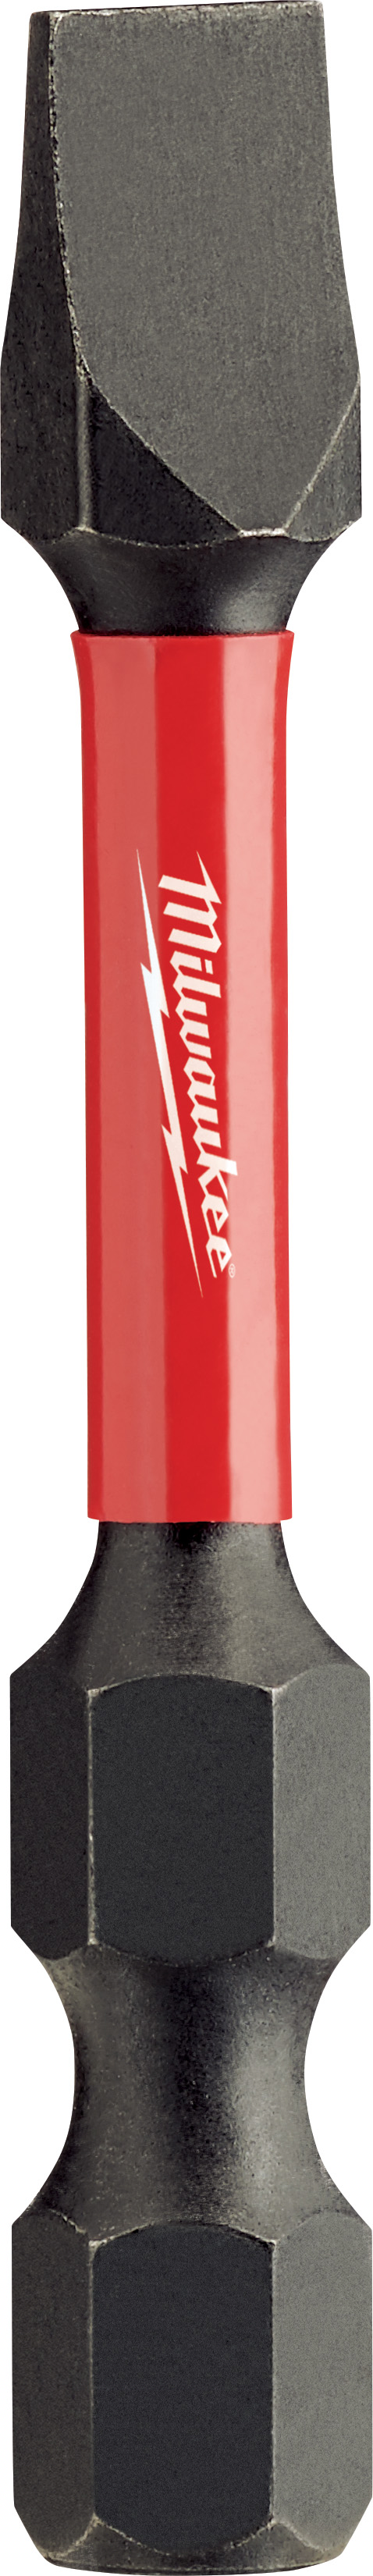 Milwaukee® SHOCKWAVE™ 48-32-4158 Impact Power Bit, 1/4 in Slotted Point, 2 in OAL, 1/4 in, Custom Alloy76™ Steel